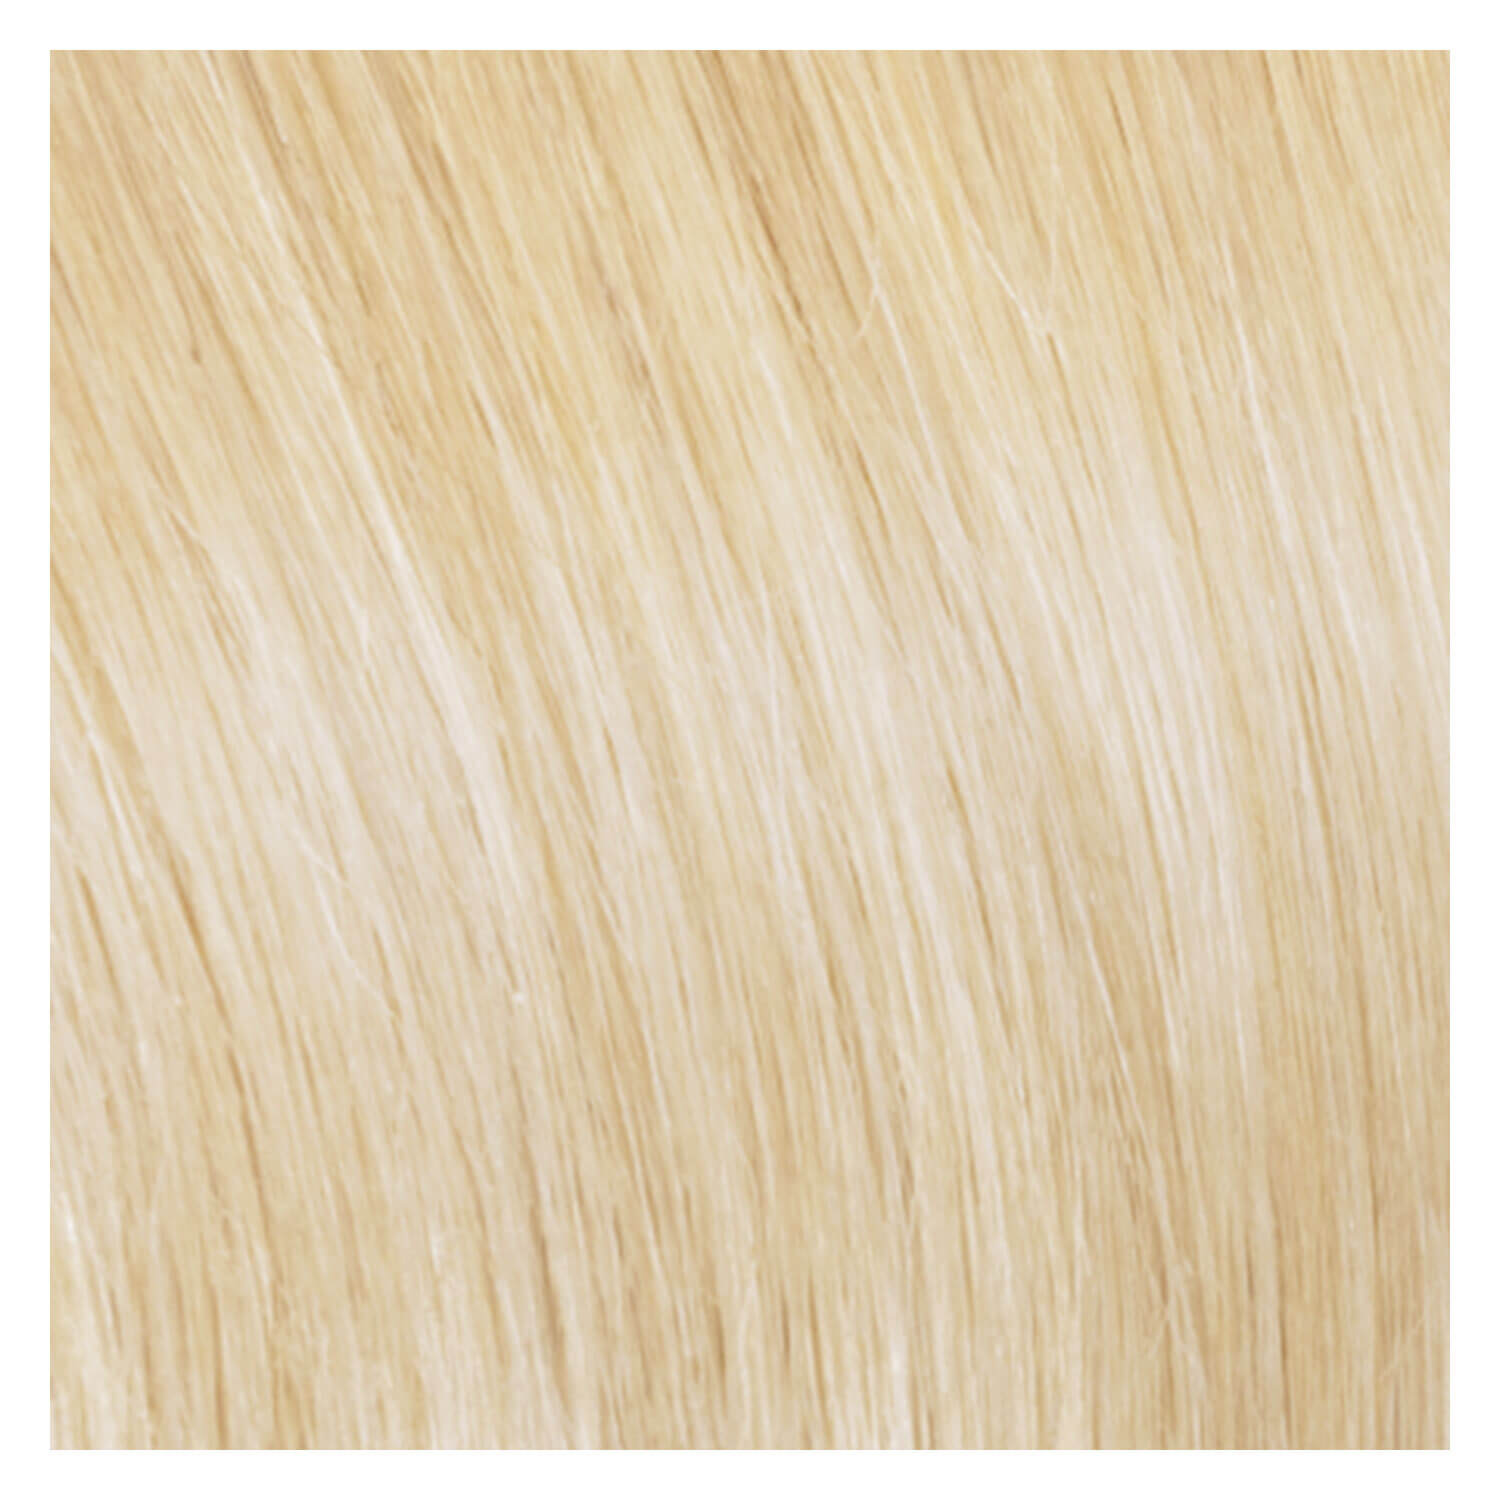 SHE Clip In-System Hair Extensions - 1001 Sehr helles Platinblond 50/55cm